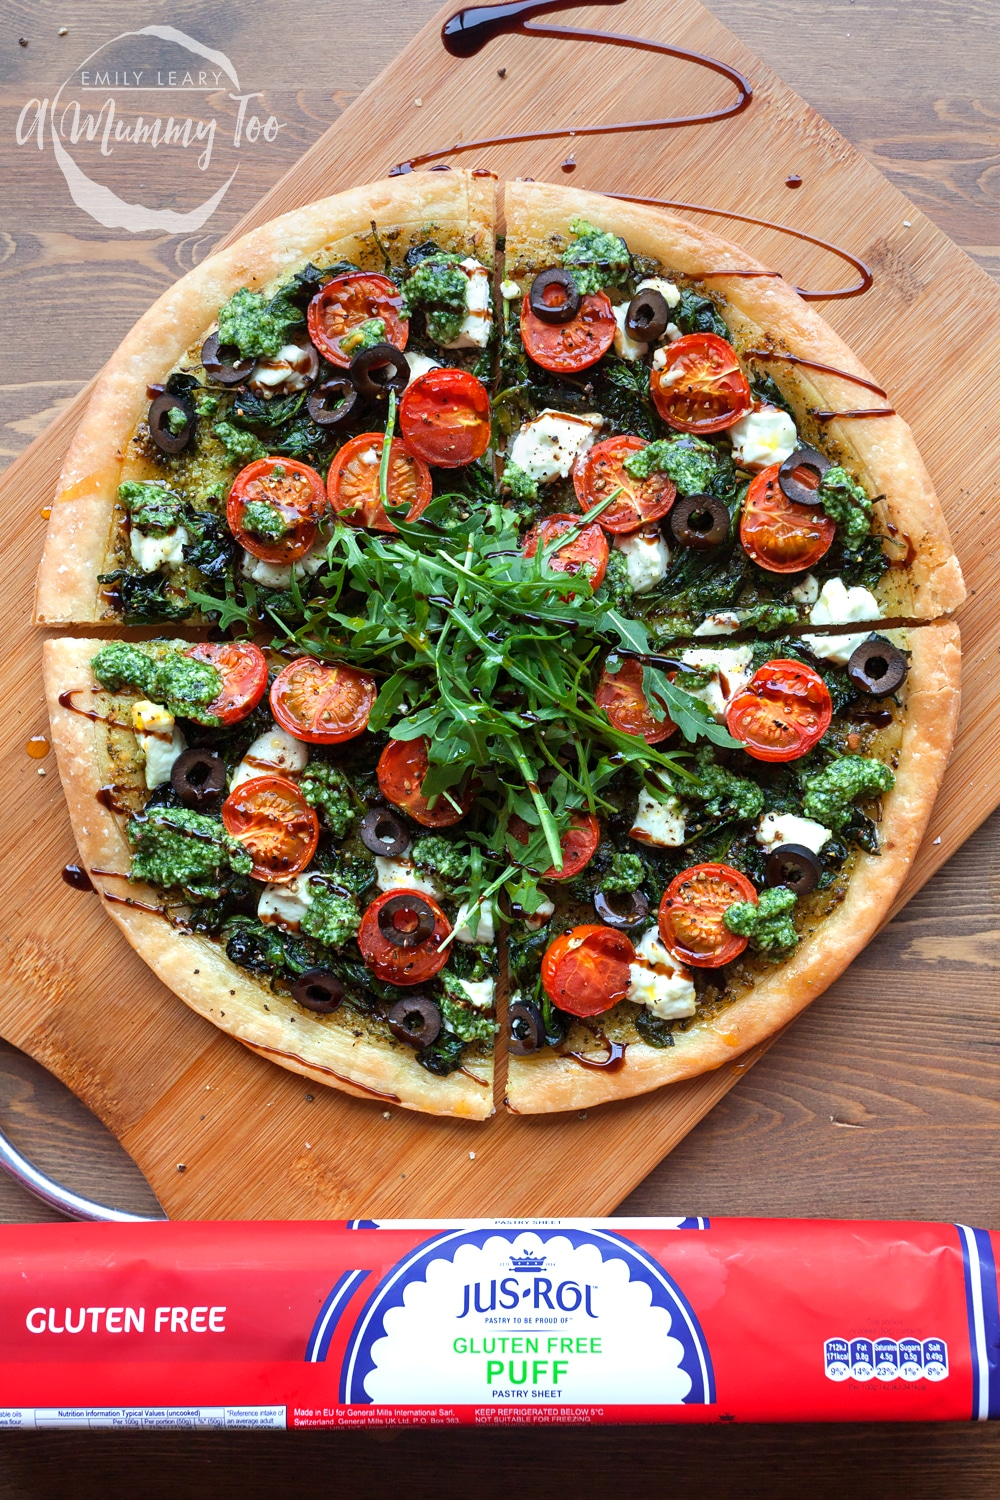 Serve your gluten-free spinach and goat's cheese pesto tart with sliced olives, rocket and a drizzle of balsamic glaze